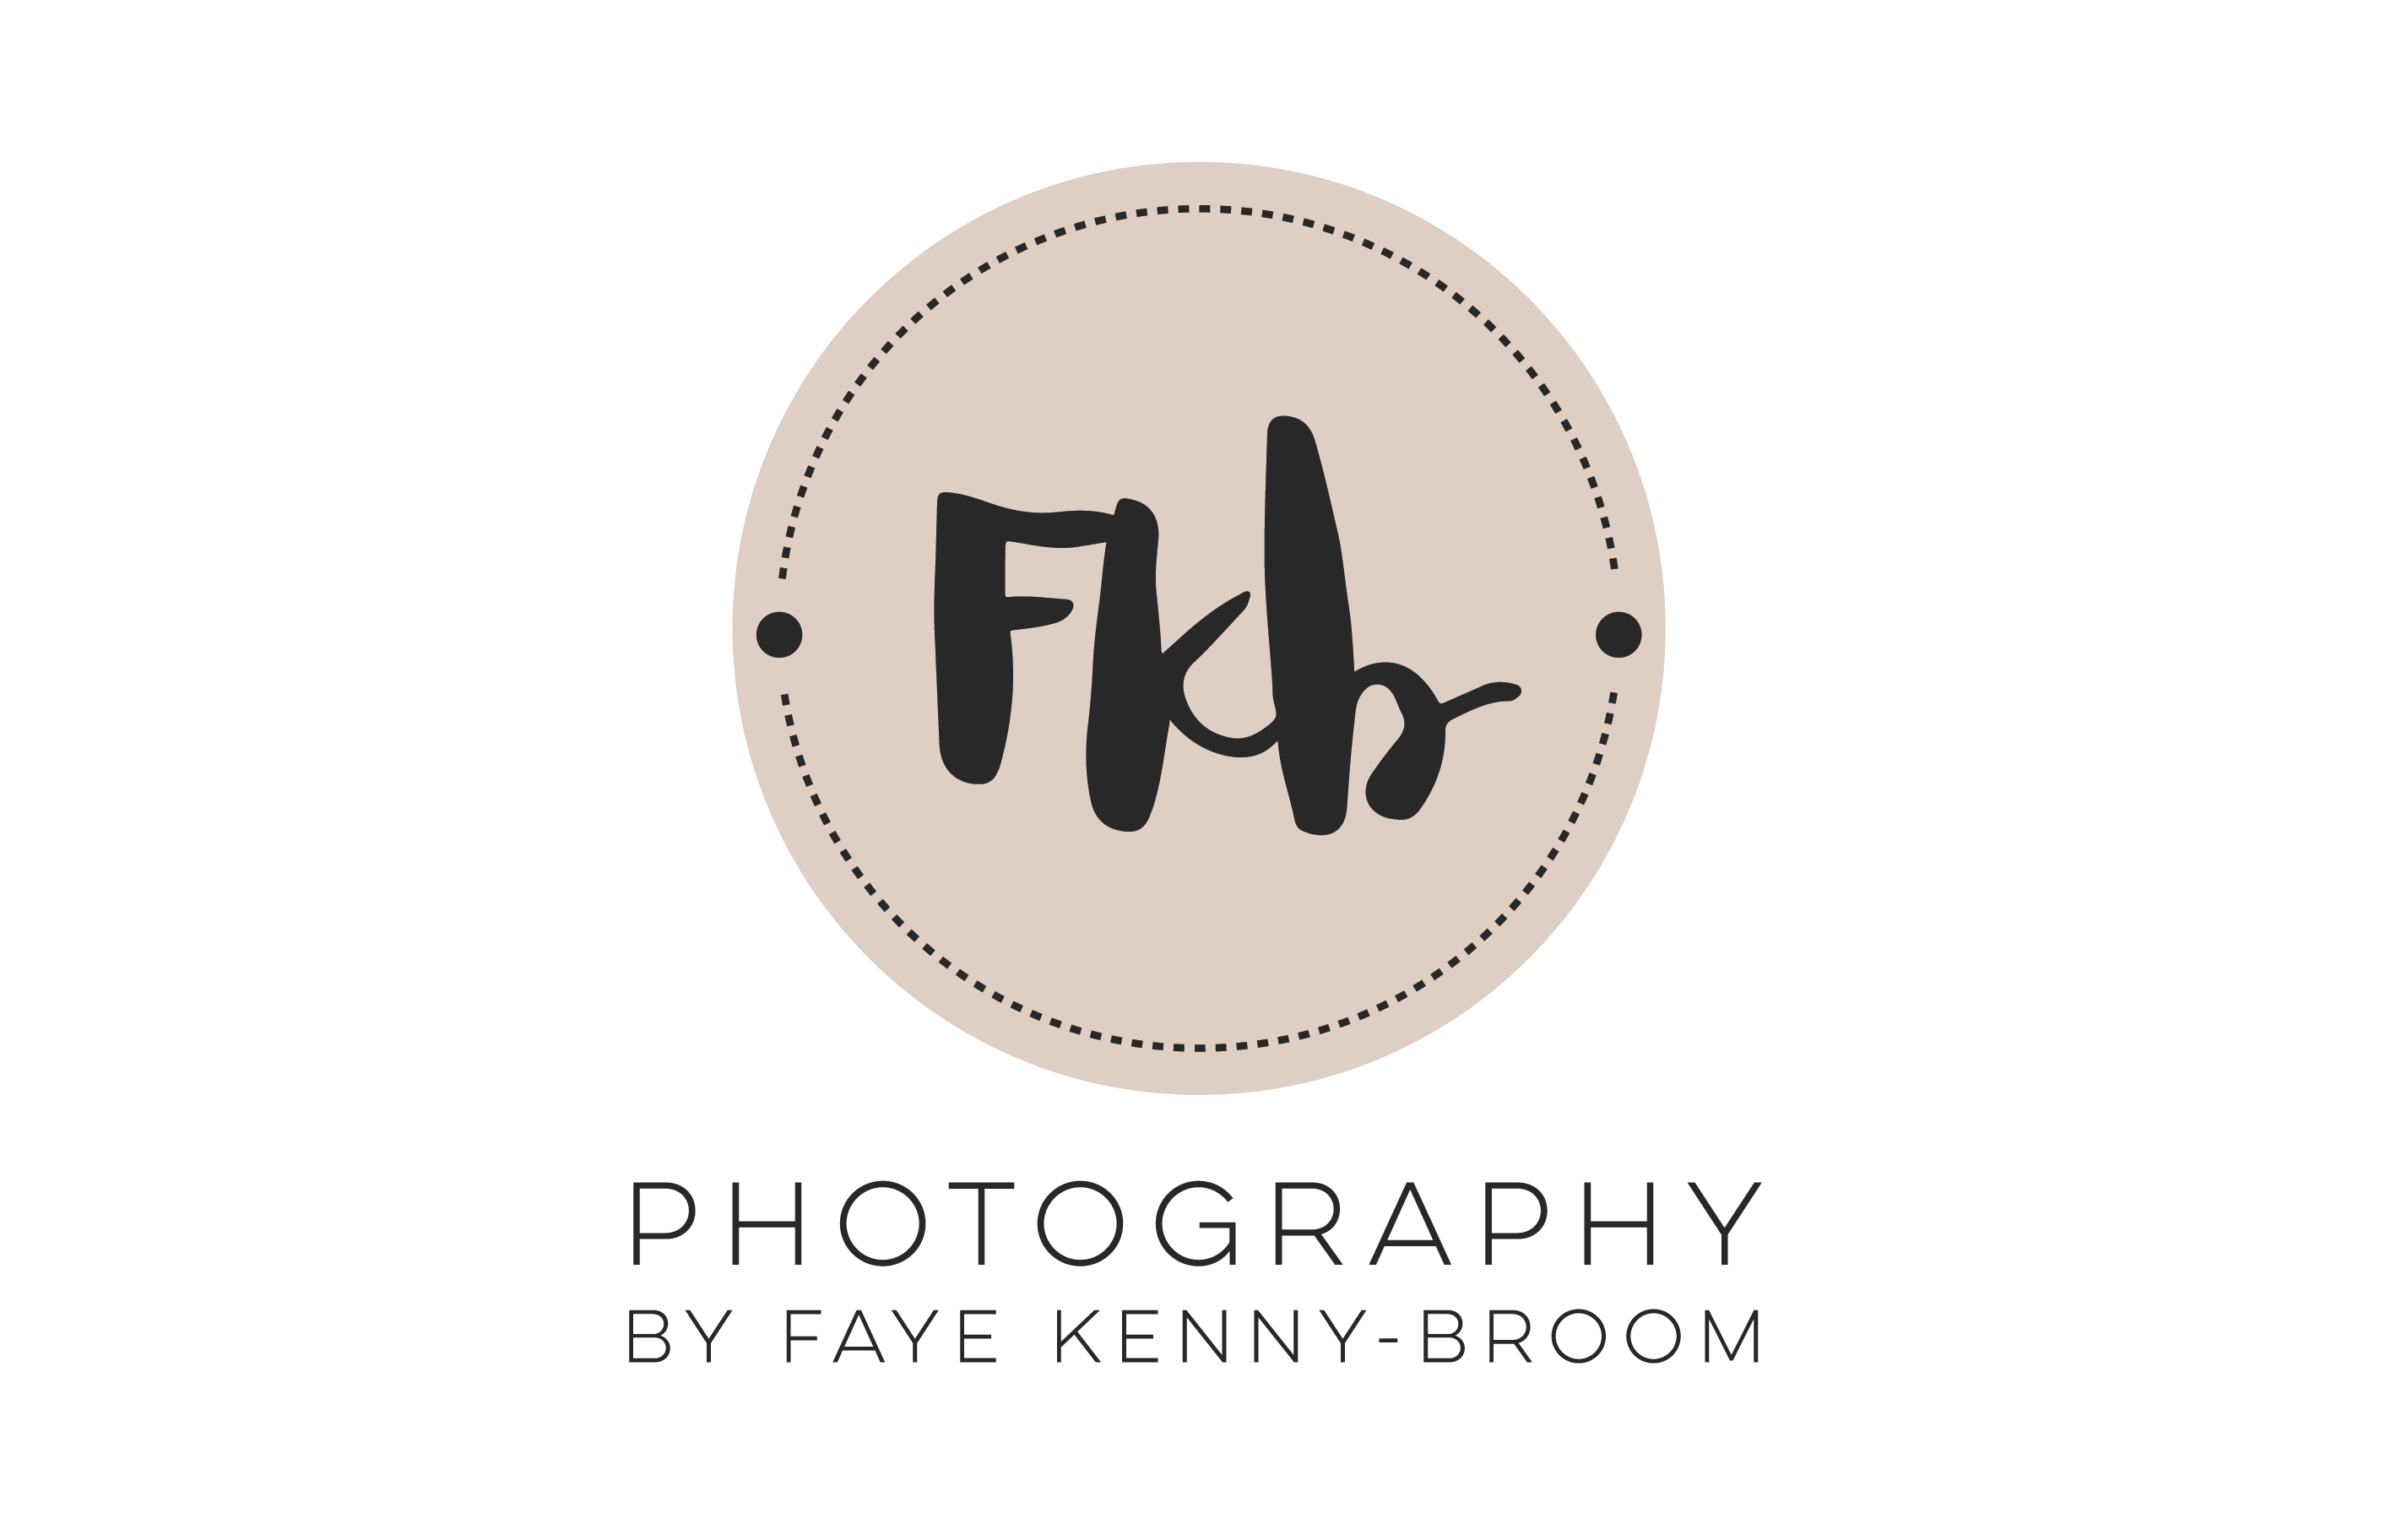 Photography by Faye Kenny-Broom